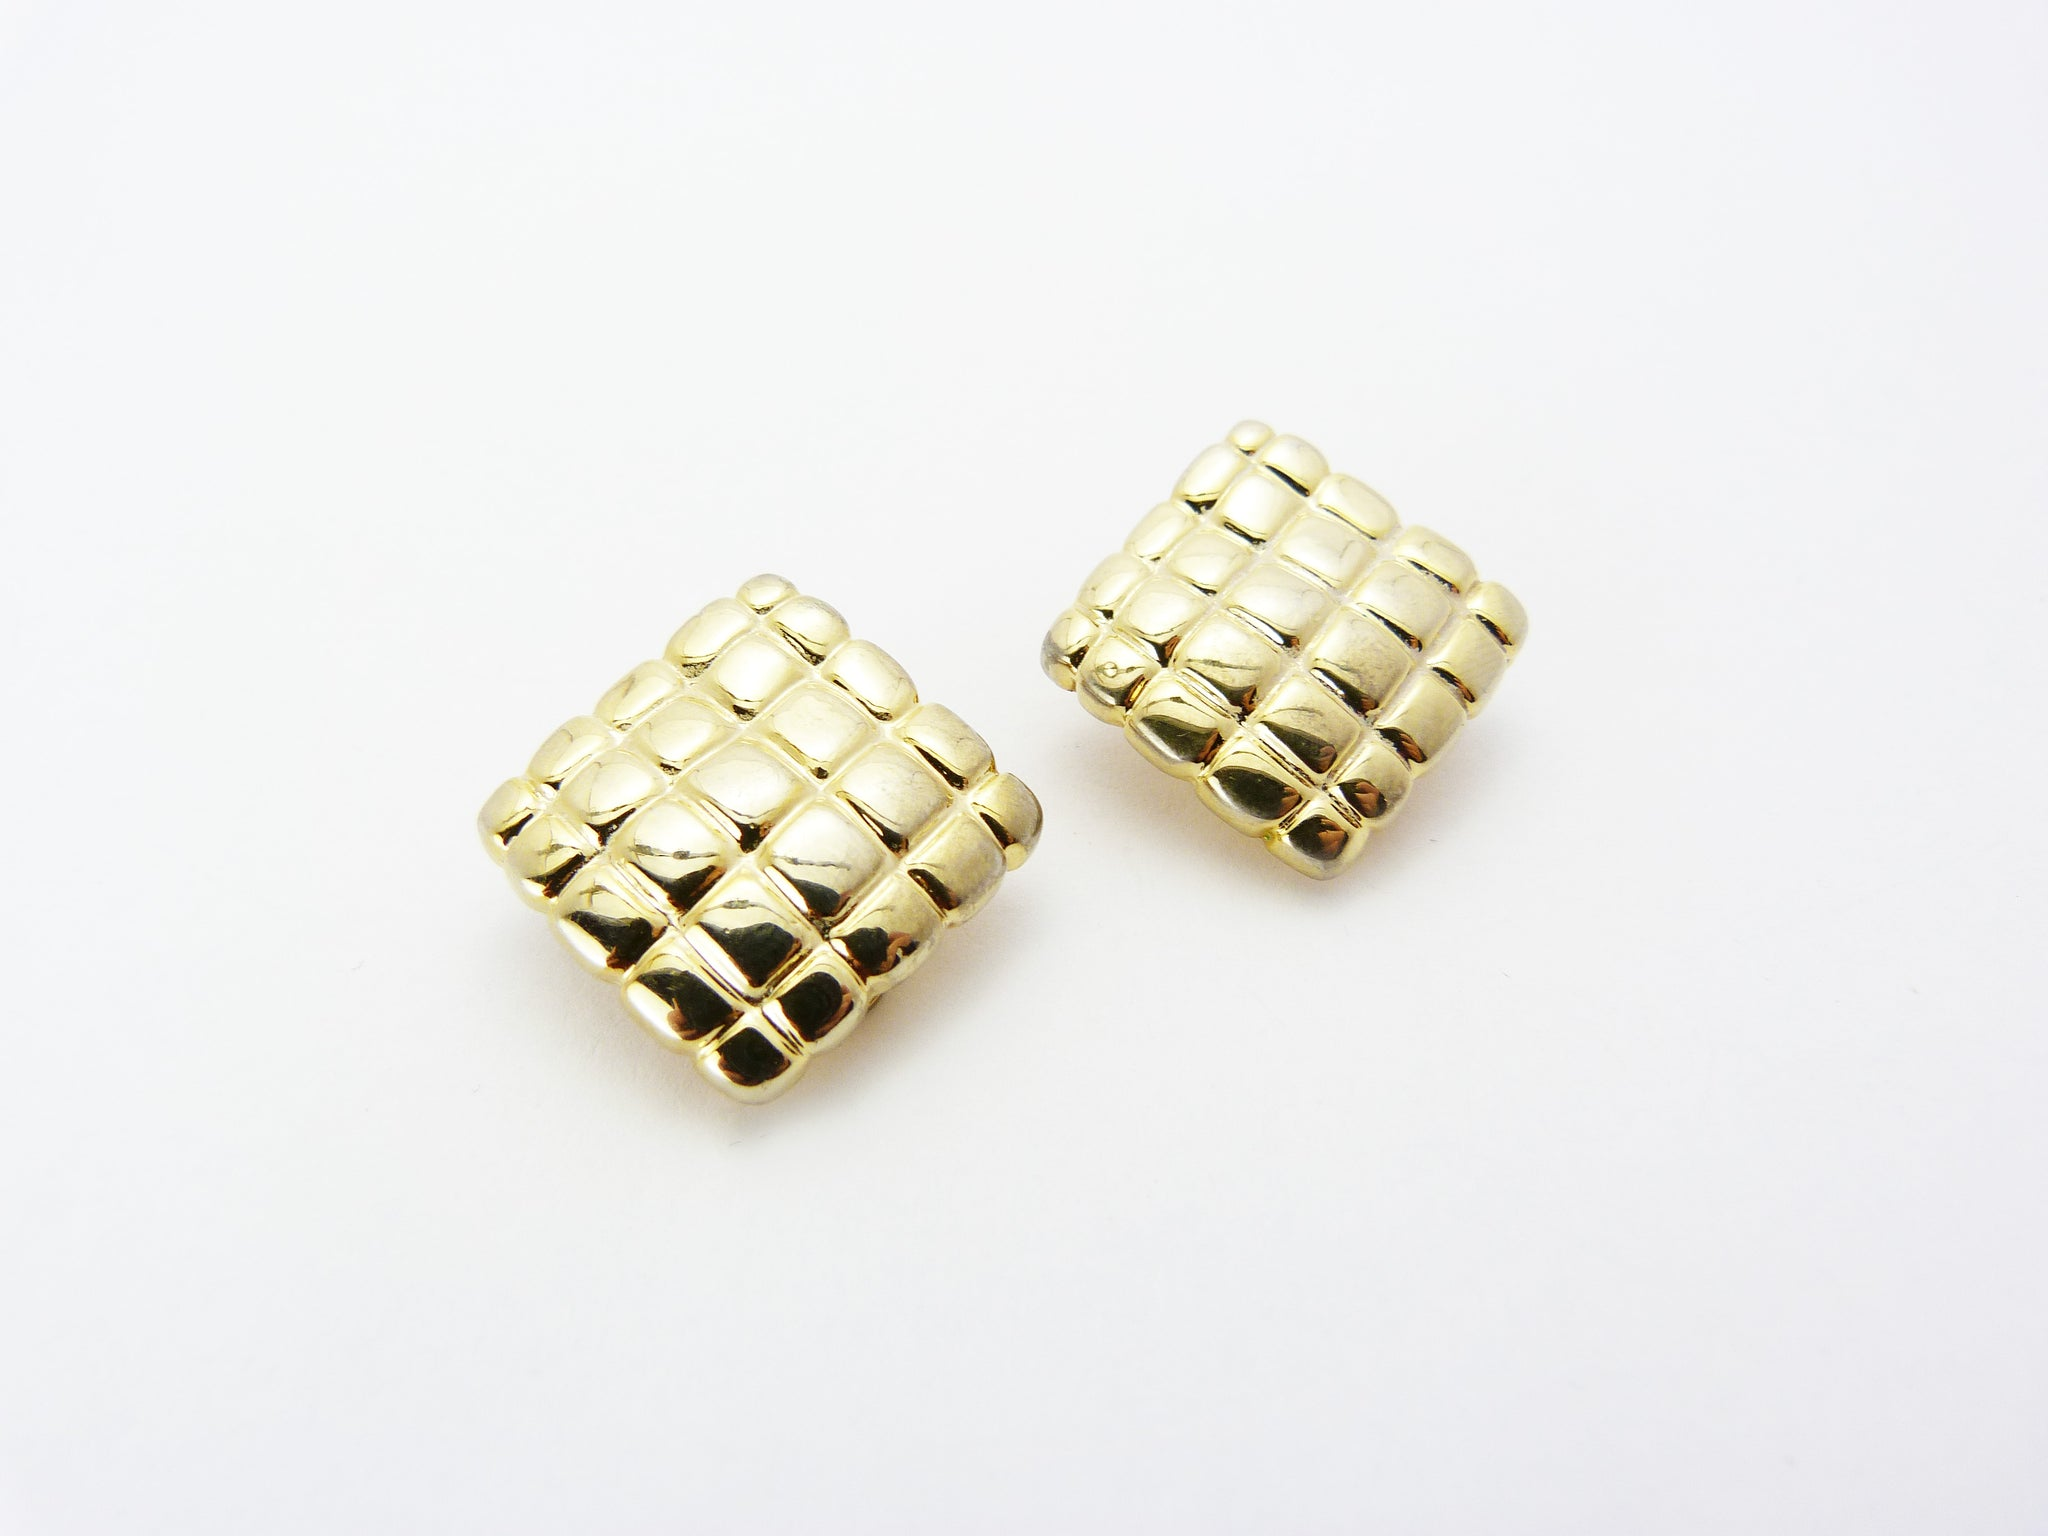 1980s Gold Tone Square/Diamond Clip On Earrings